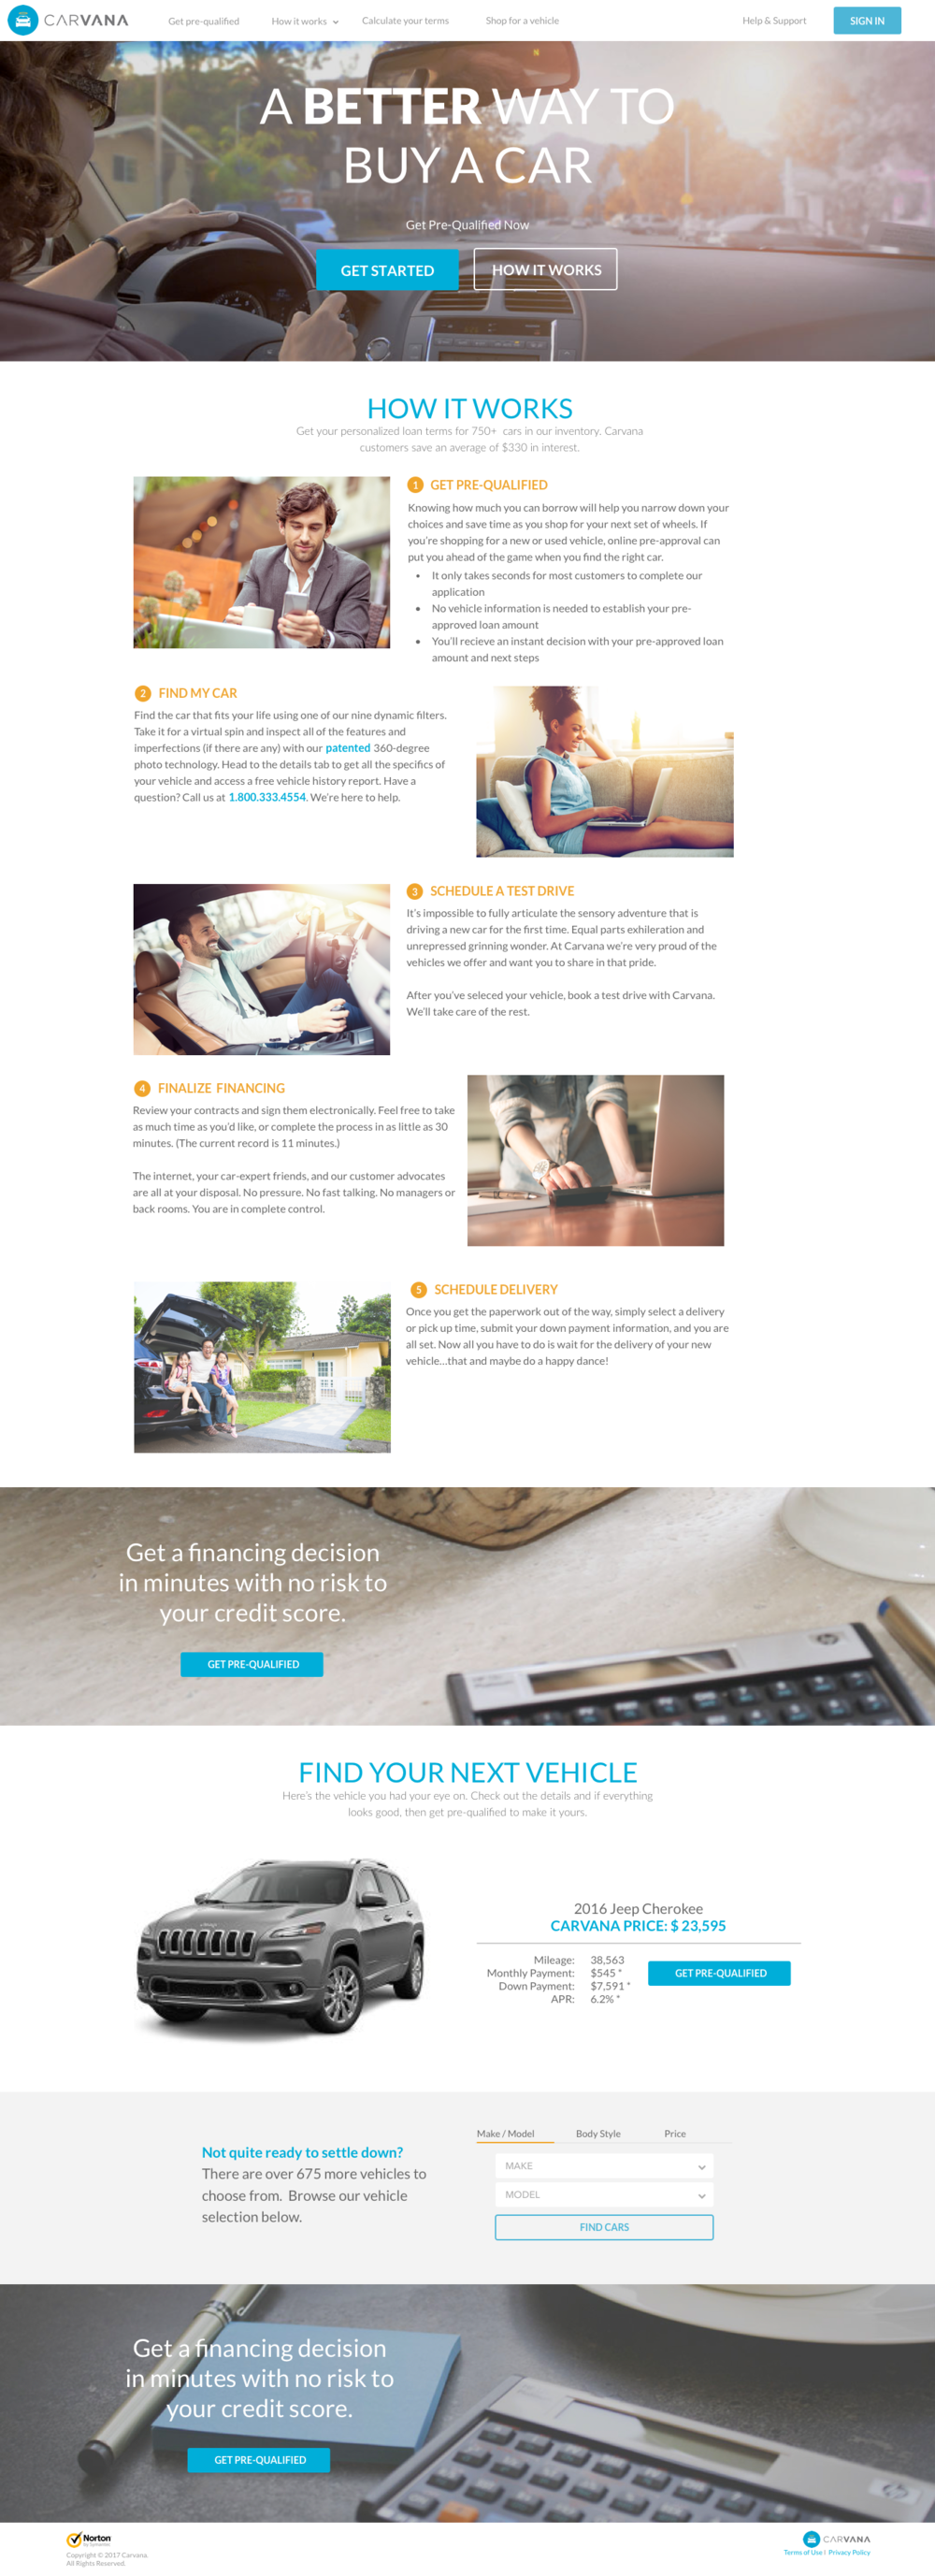 Fully responsive pre-qualification landing page design.